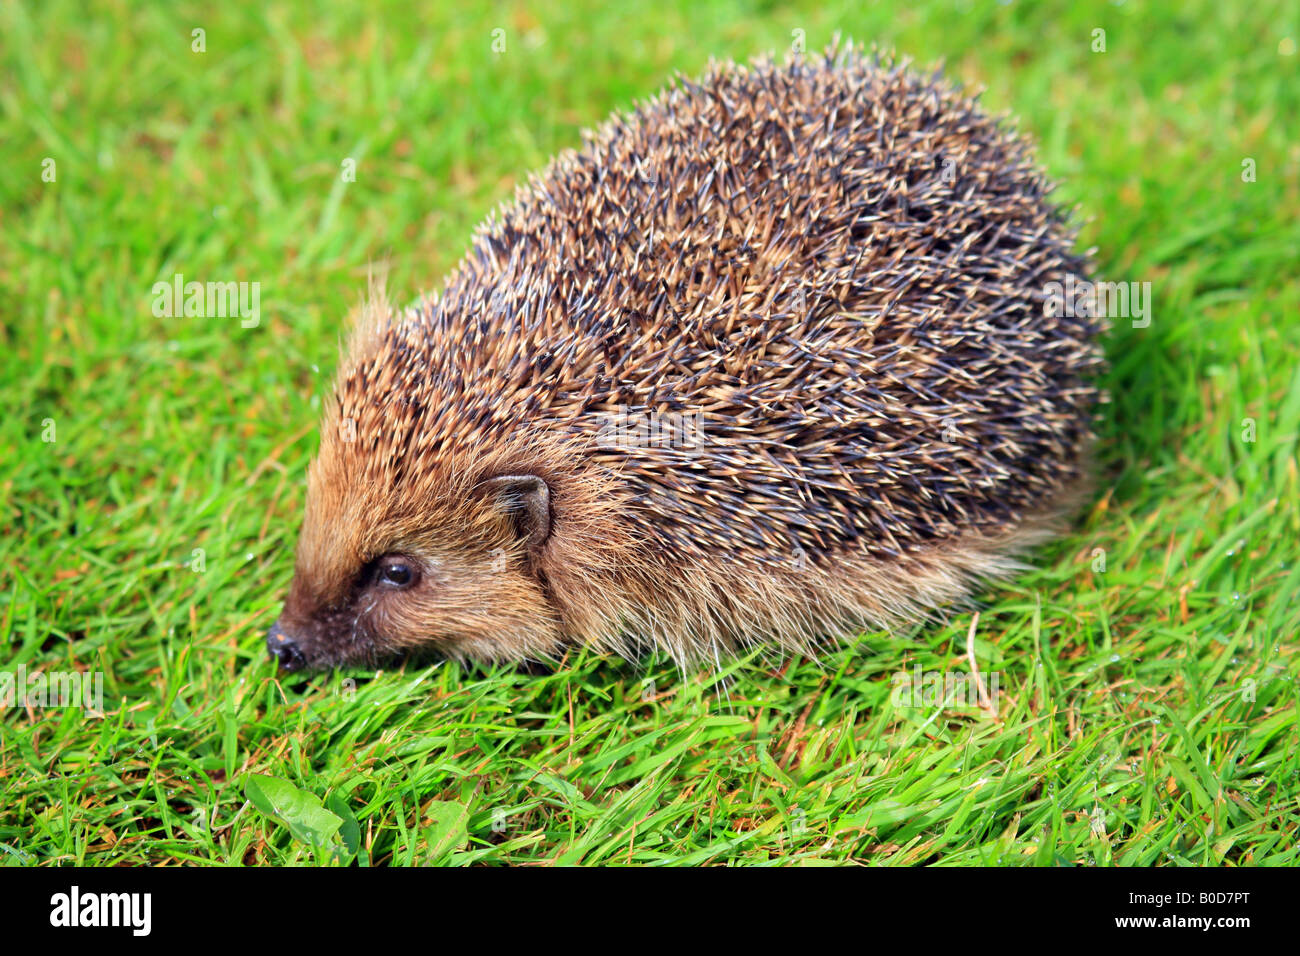 Hedgehog on grass lawn during the day in Kent England - Stock Image